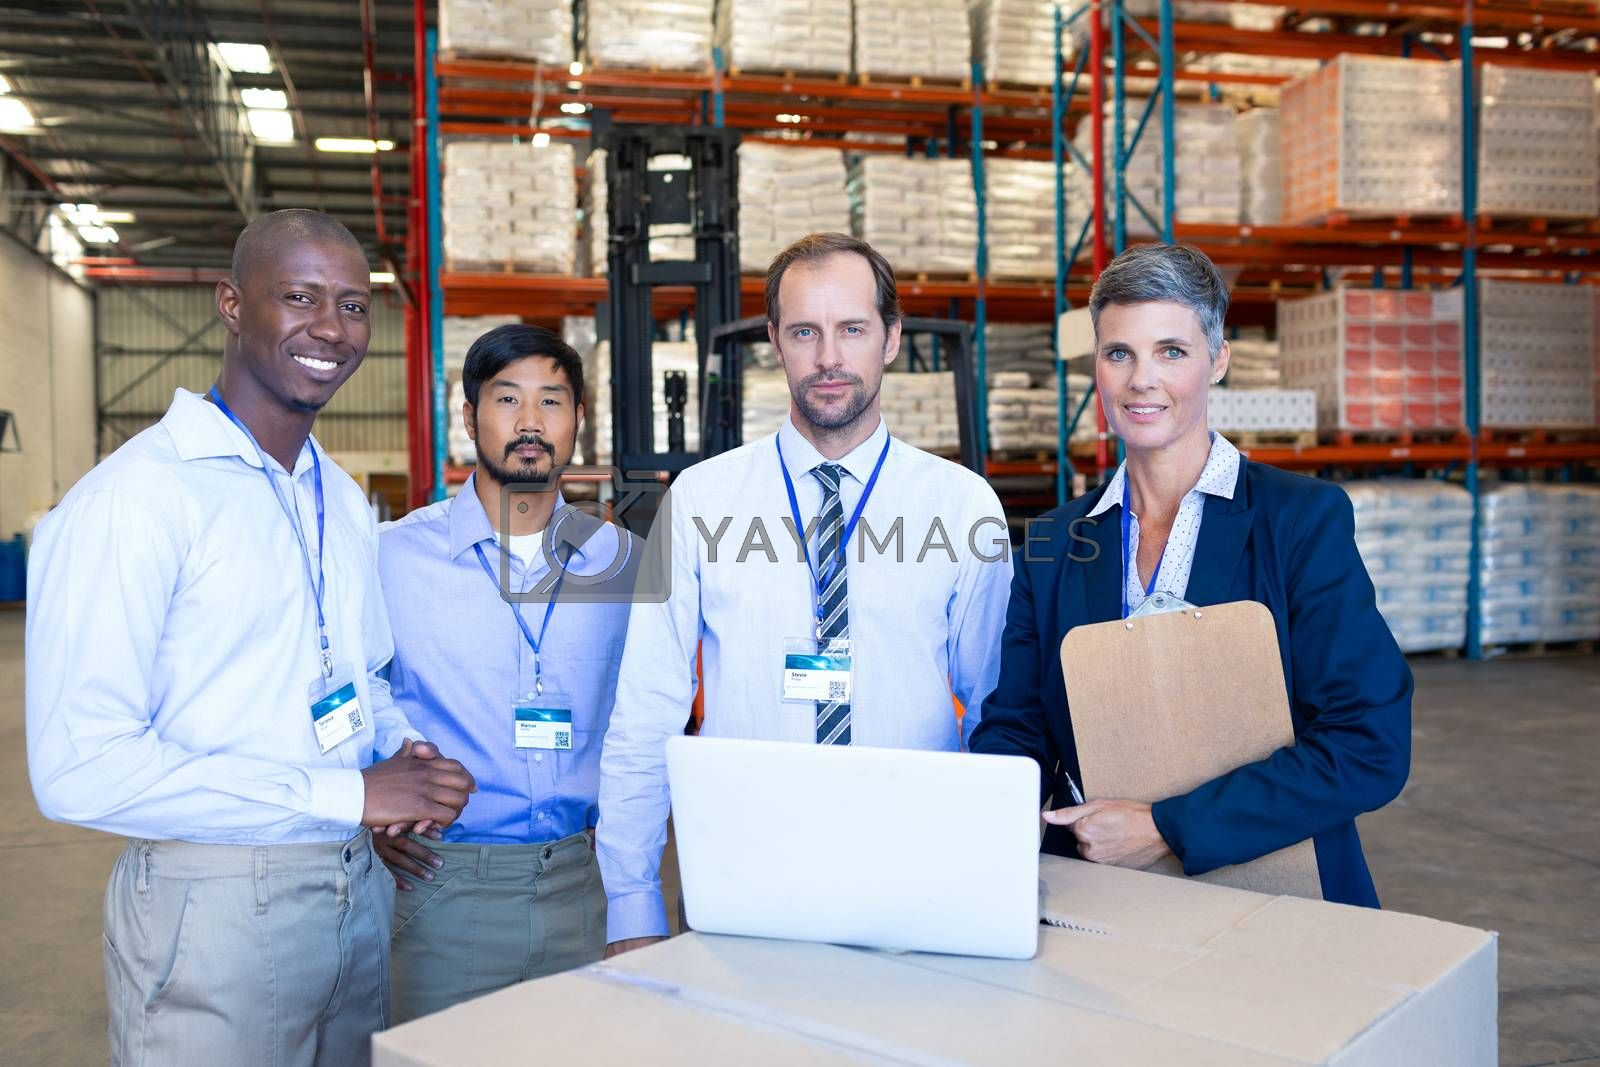 Front view of mature diverse staff looking at camera in warehouse. This is a freight transportation and distribution warehouse. Industrial and industrial workers concept